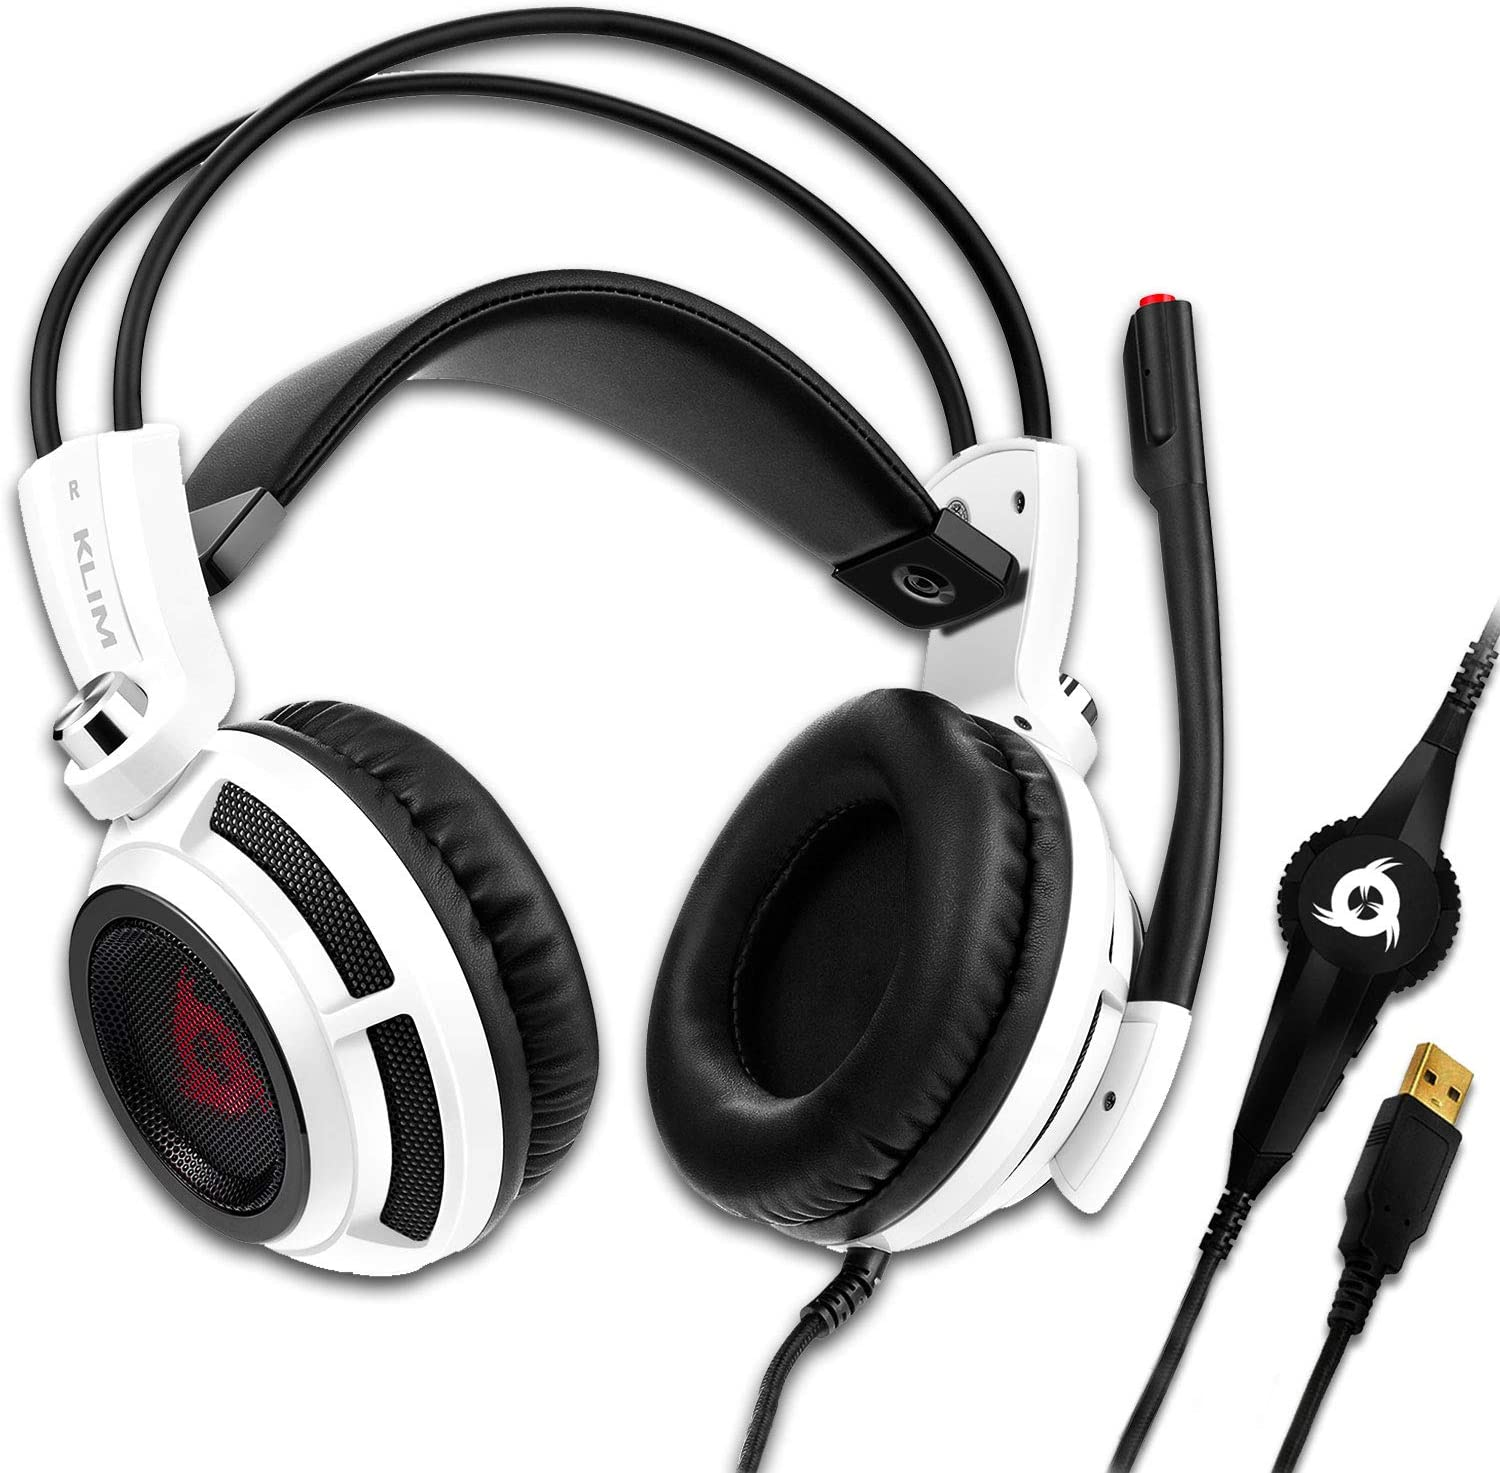 KLIM Puma - USB Gamer Headset with Mic - 7.1 Surround Sound Audio - Integrated Vibrations - Perfect for PC and PS4 Gaming - New 2021 Version - White